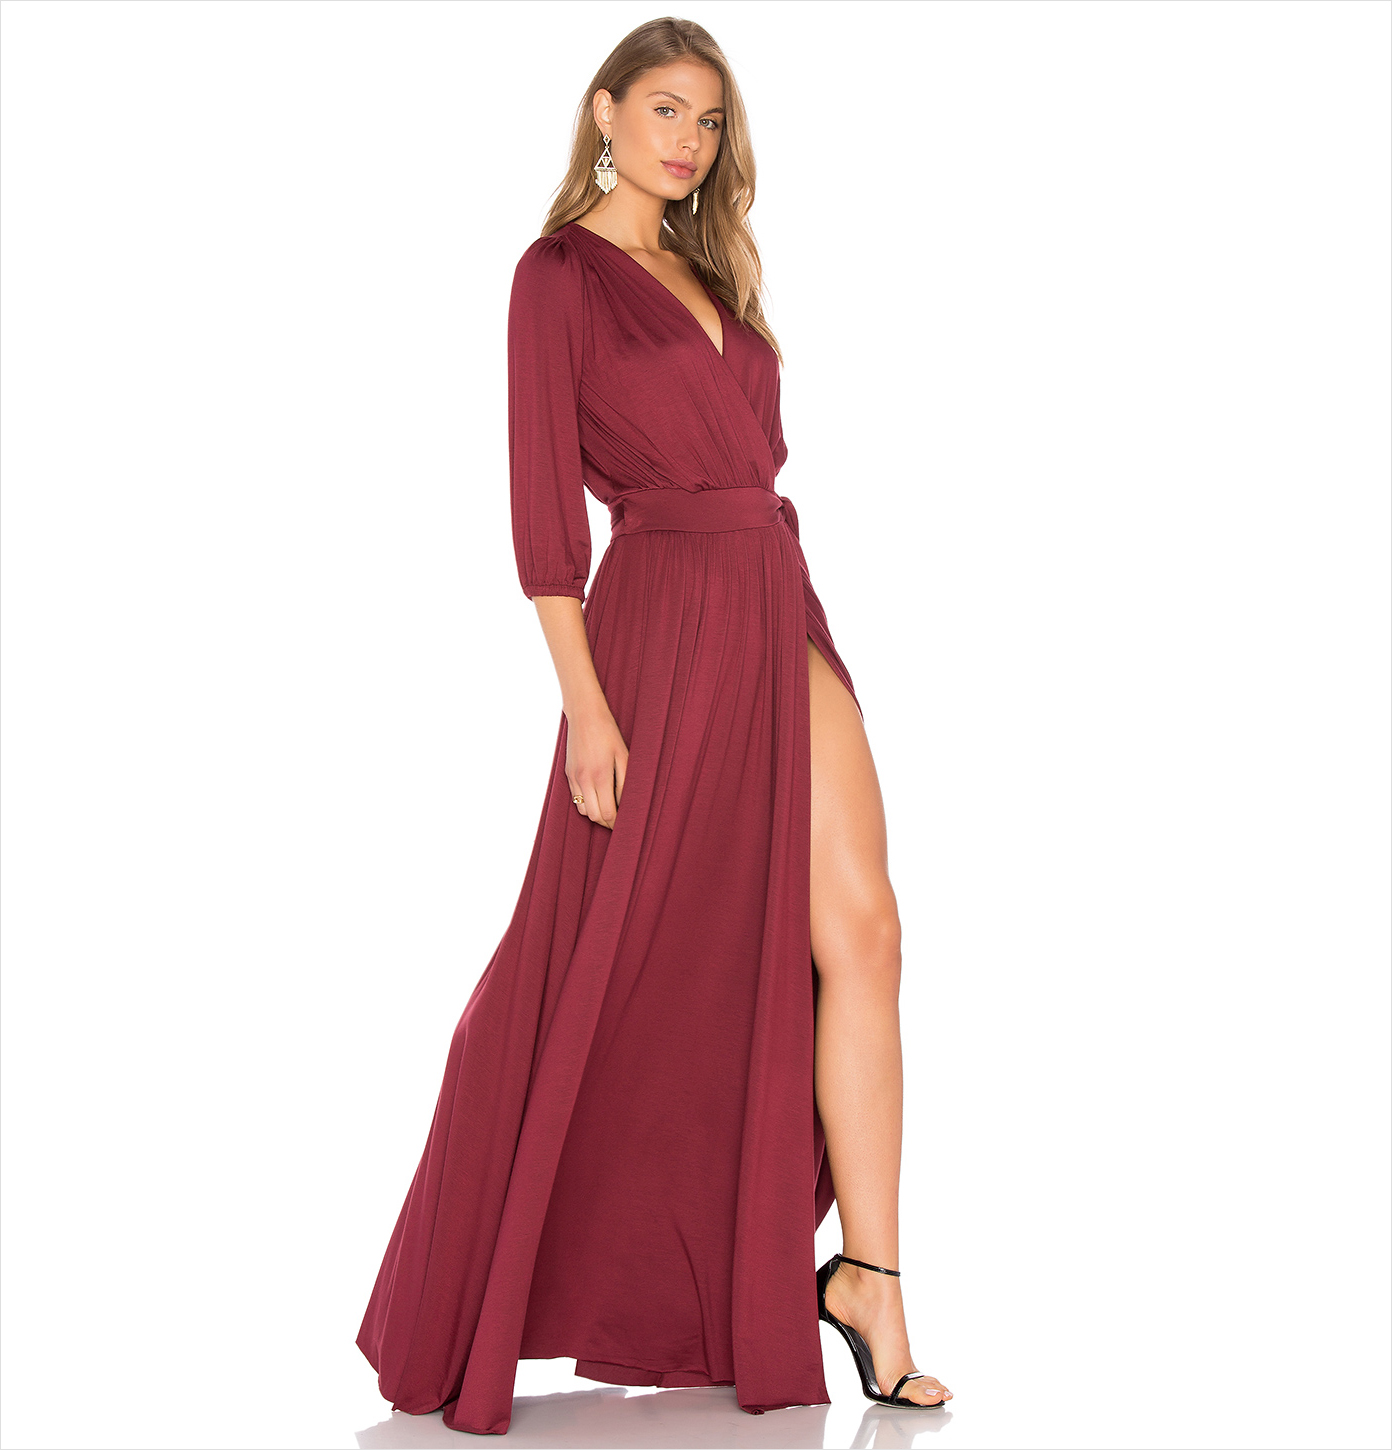 Ingrid silky red long sleeve wedding guest dress idea Rachel Pally Revolve